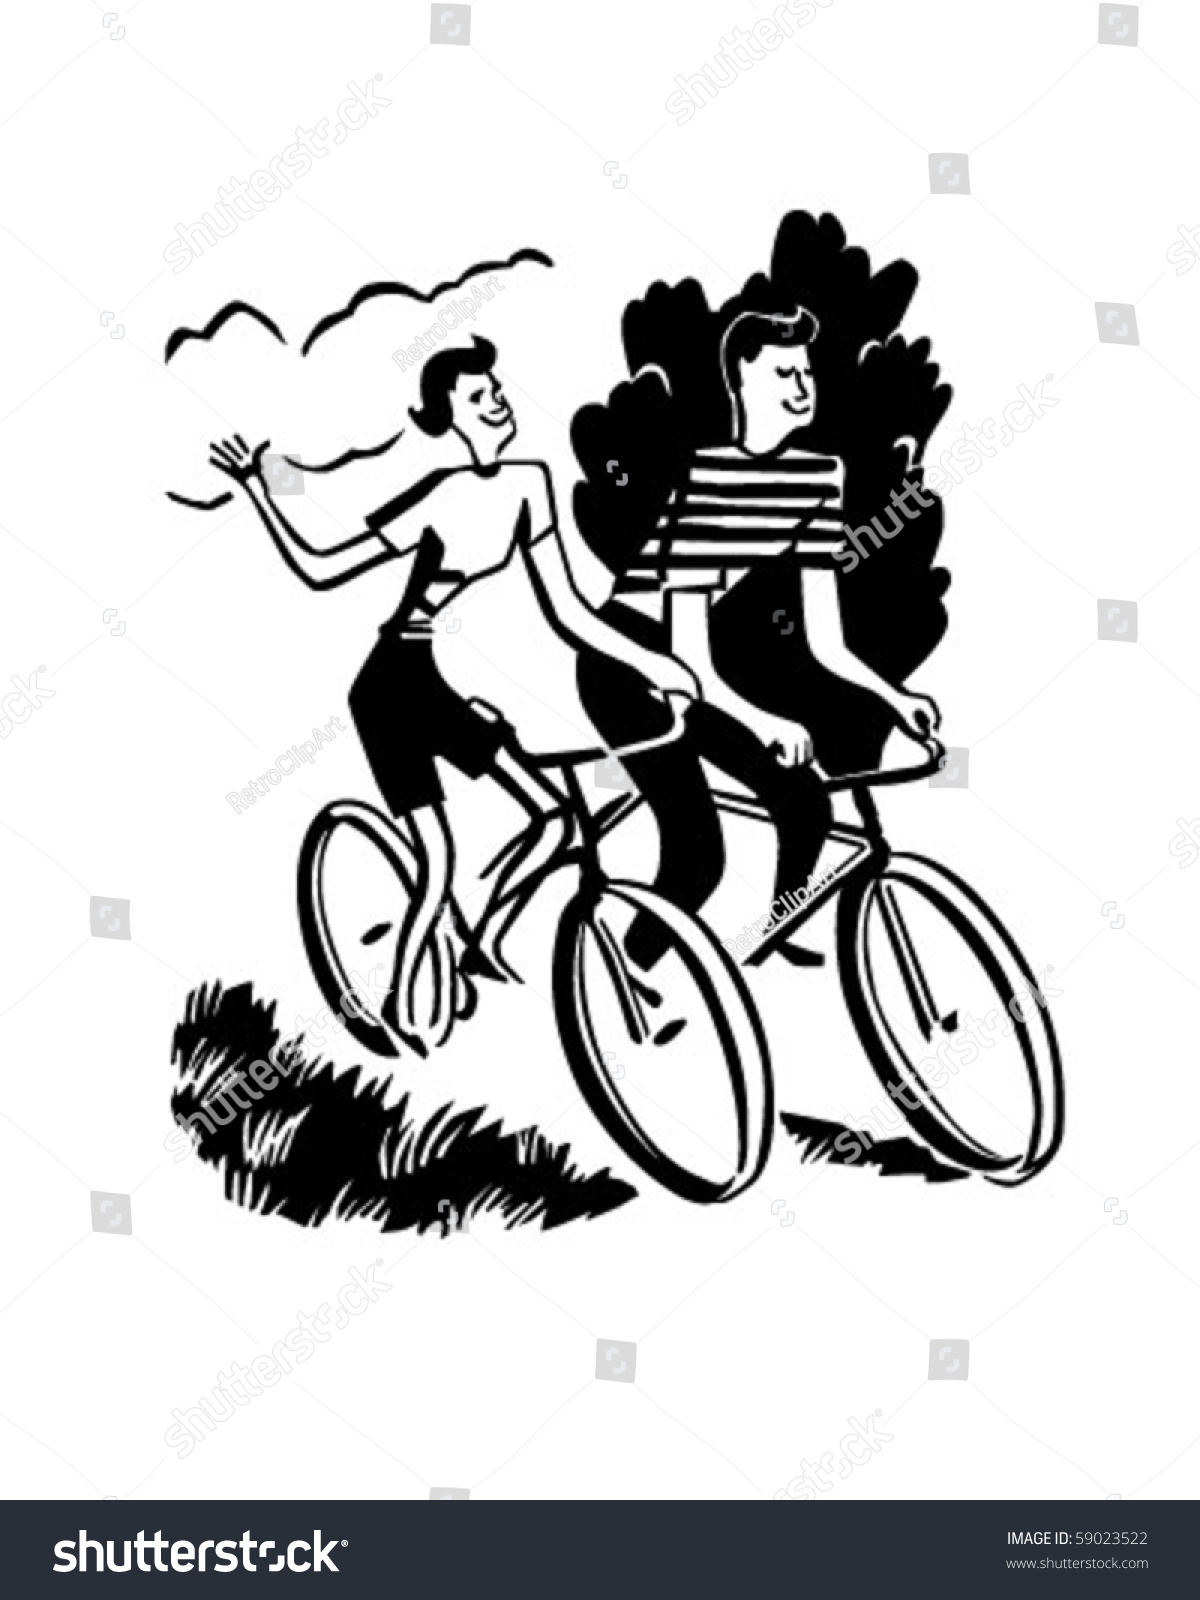 Cycling clipart recreation. Couple on bikes retro clip art freeuse library